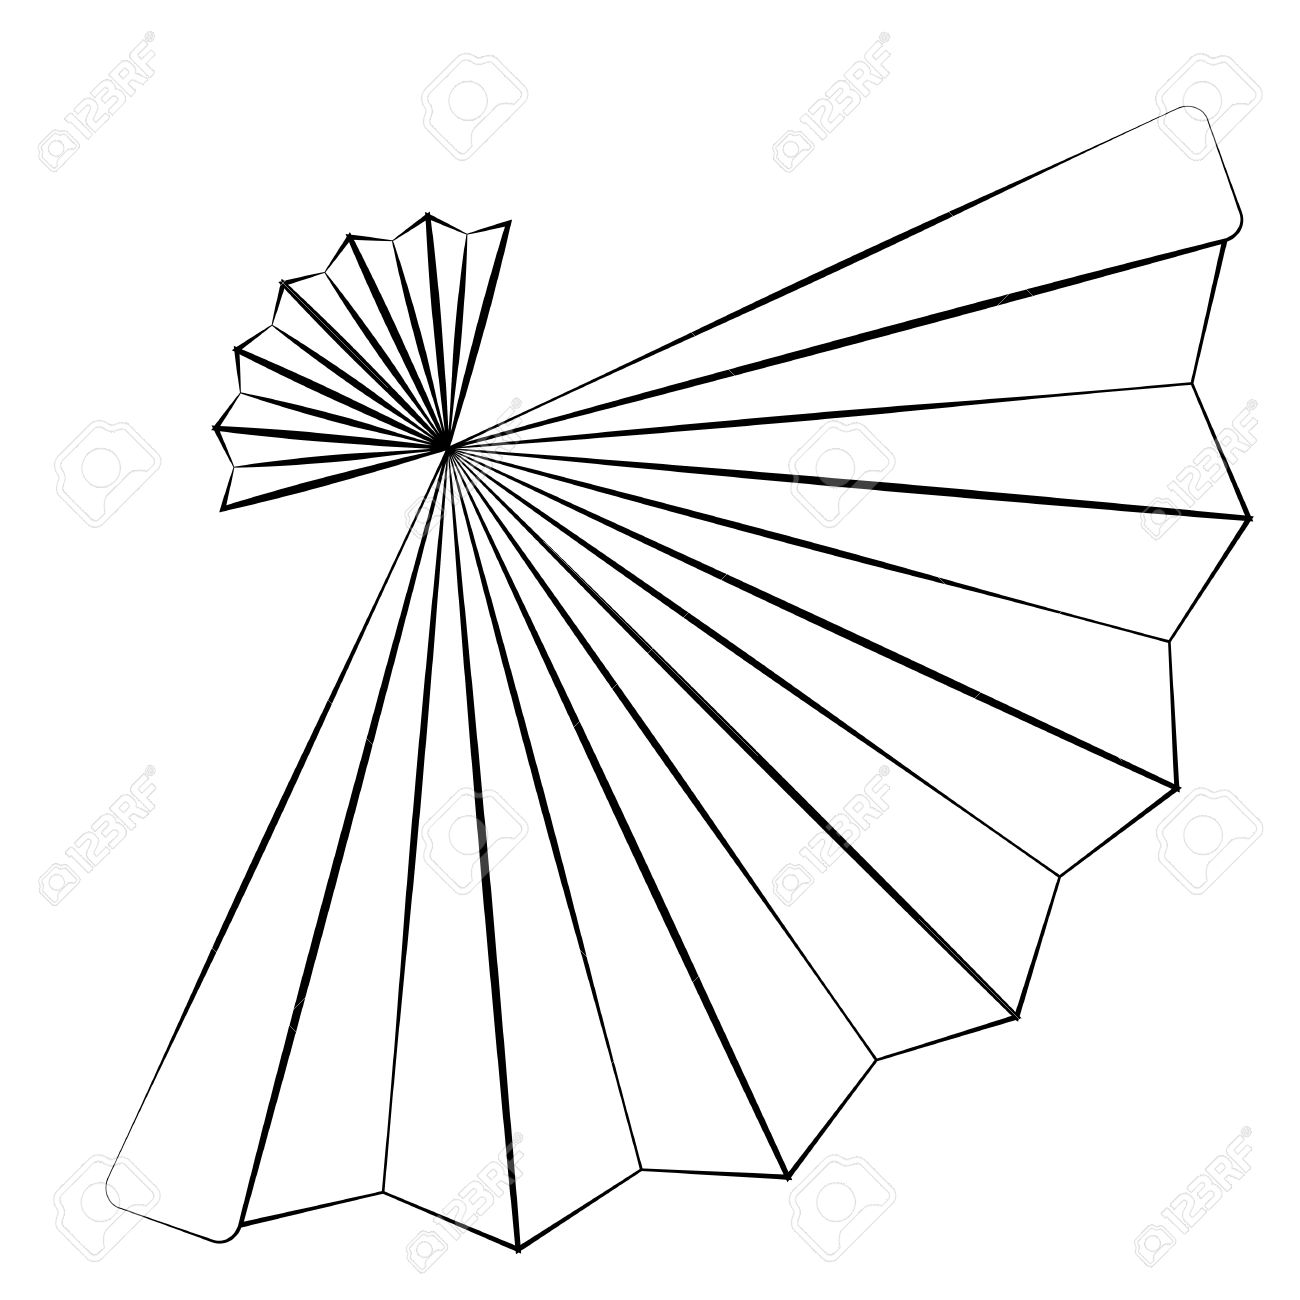 Black outline vector fan on white background royalty free cliparts